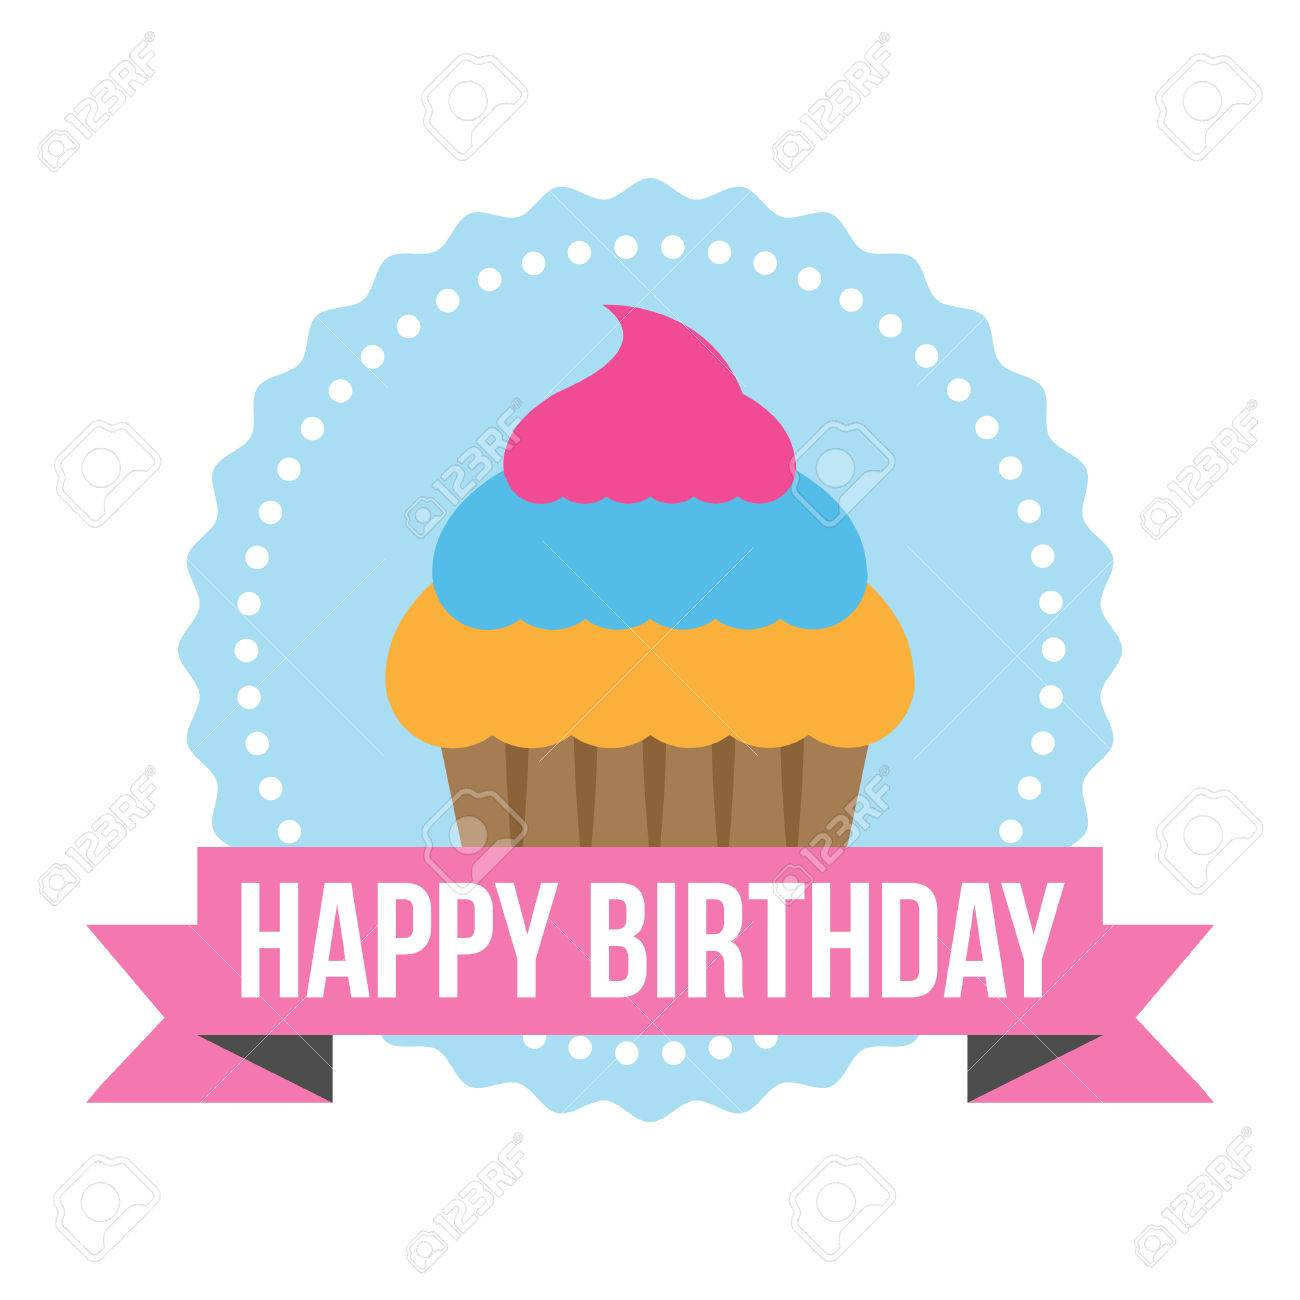 happy birthday tag images ; 30694807-happy-birthday-round-zig-zag-tag